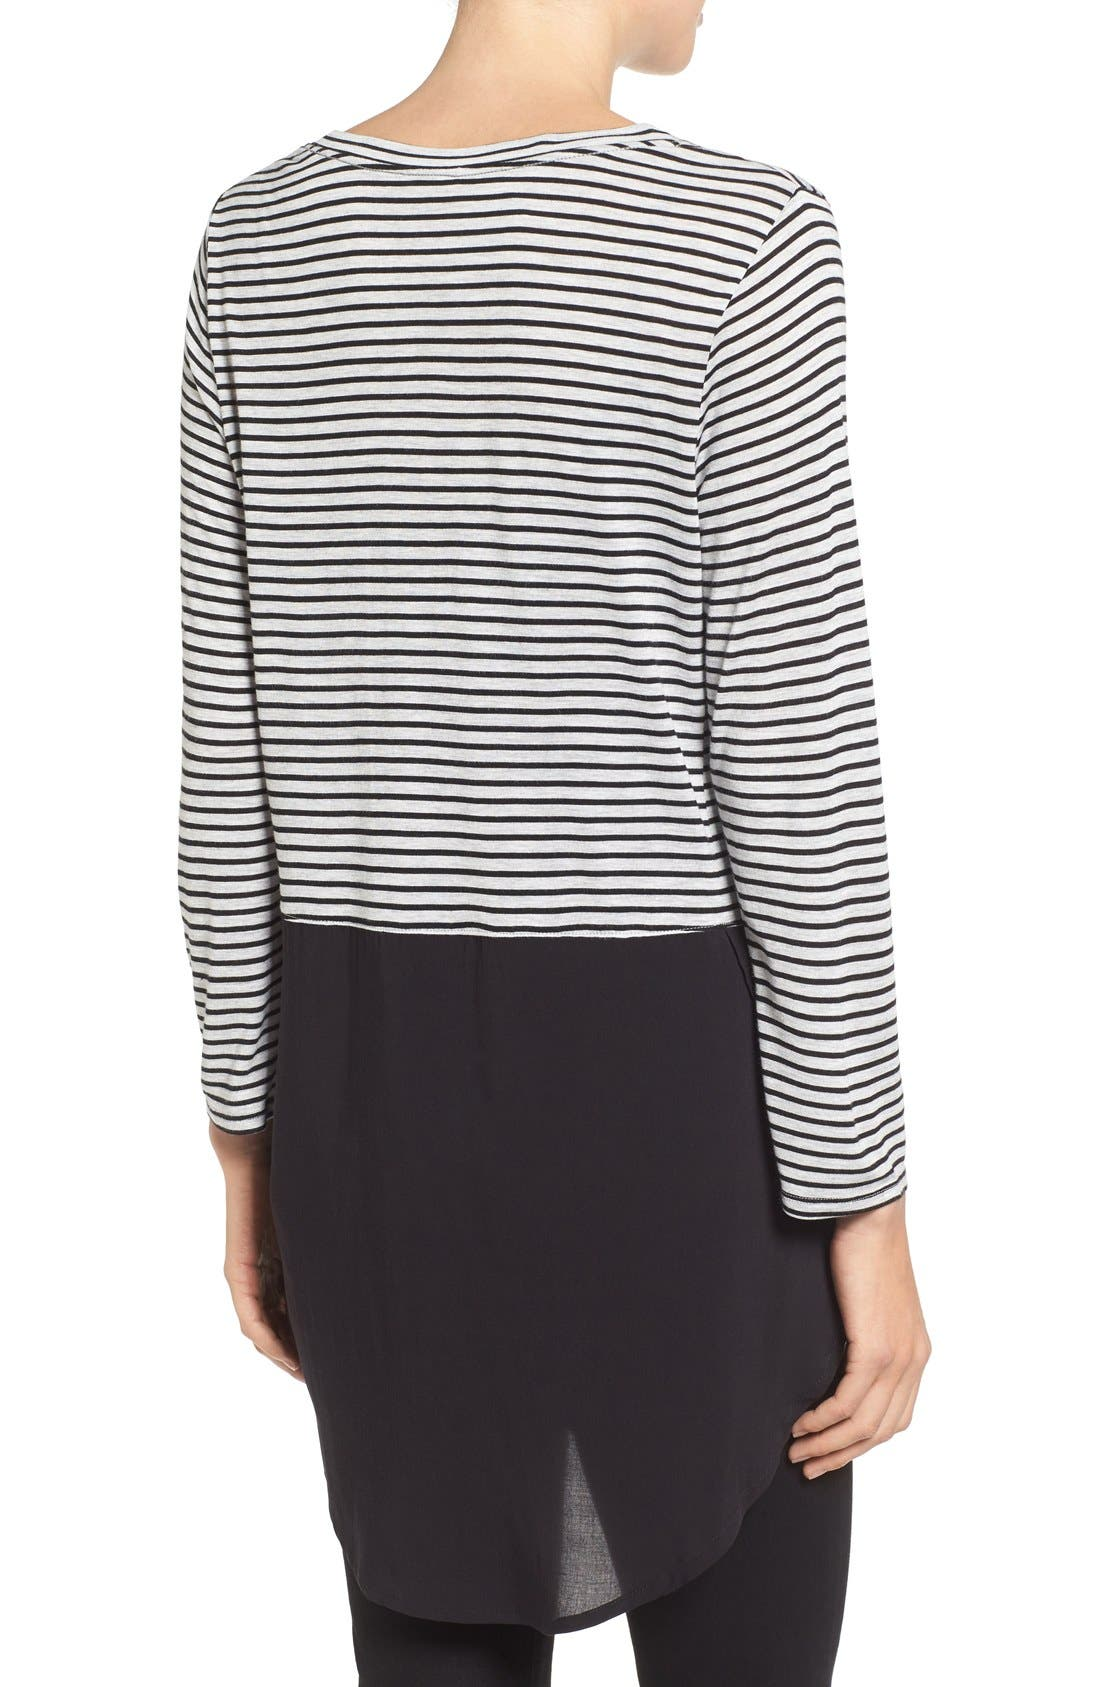 Alternate Image 2  - Two by Vince Camuto 'Anchor Stripe' Mixed Media Tunic